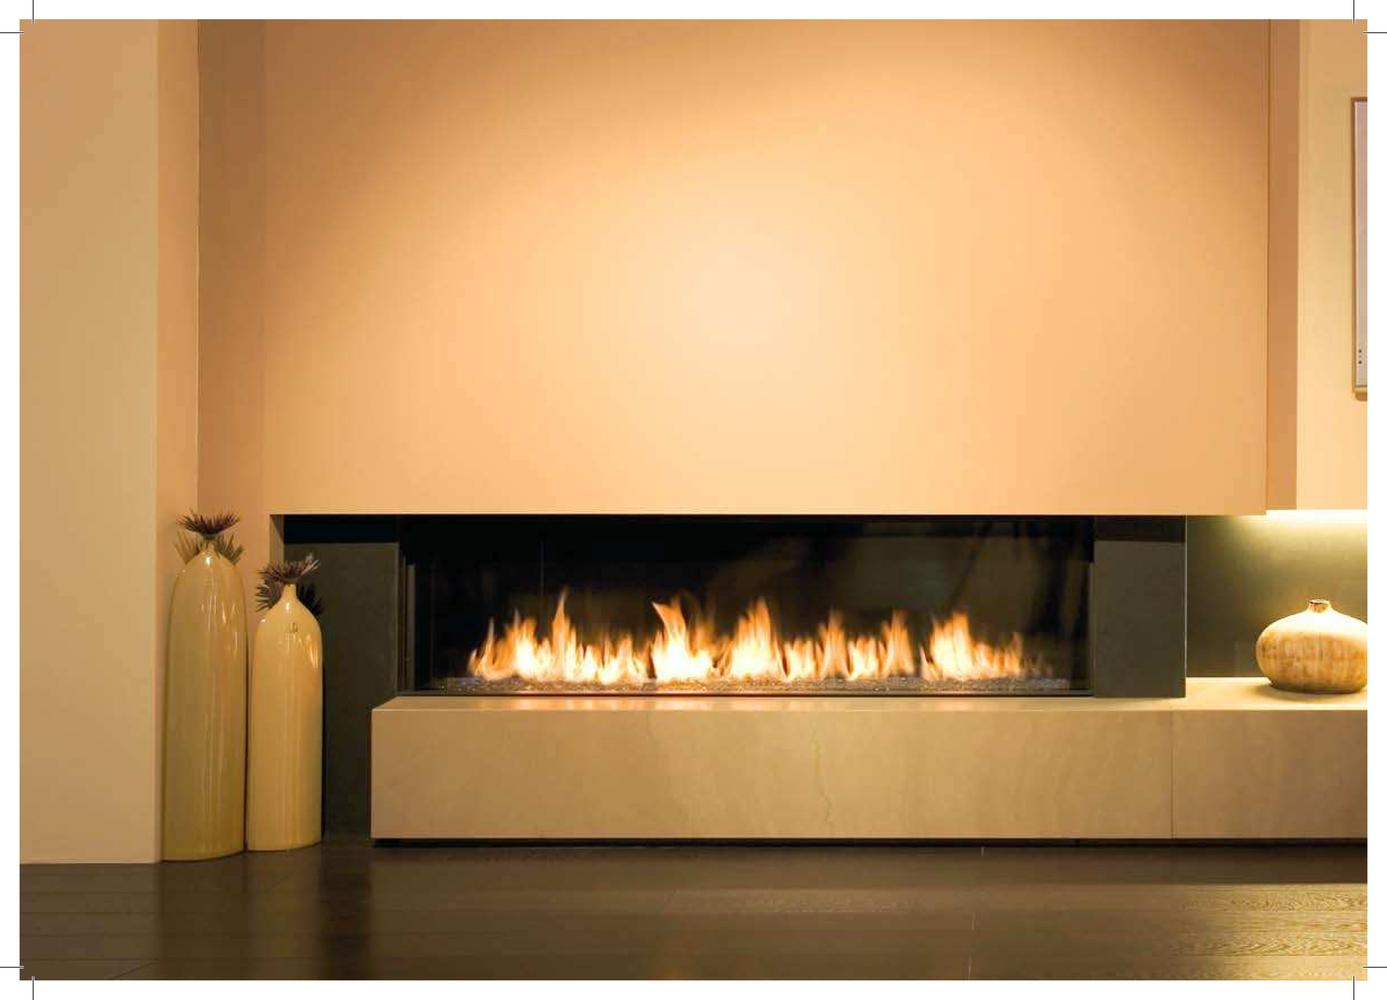 design 4 fireplace design gas or ethanol fireplace